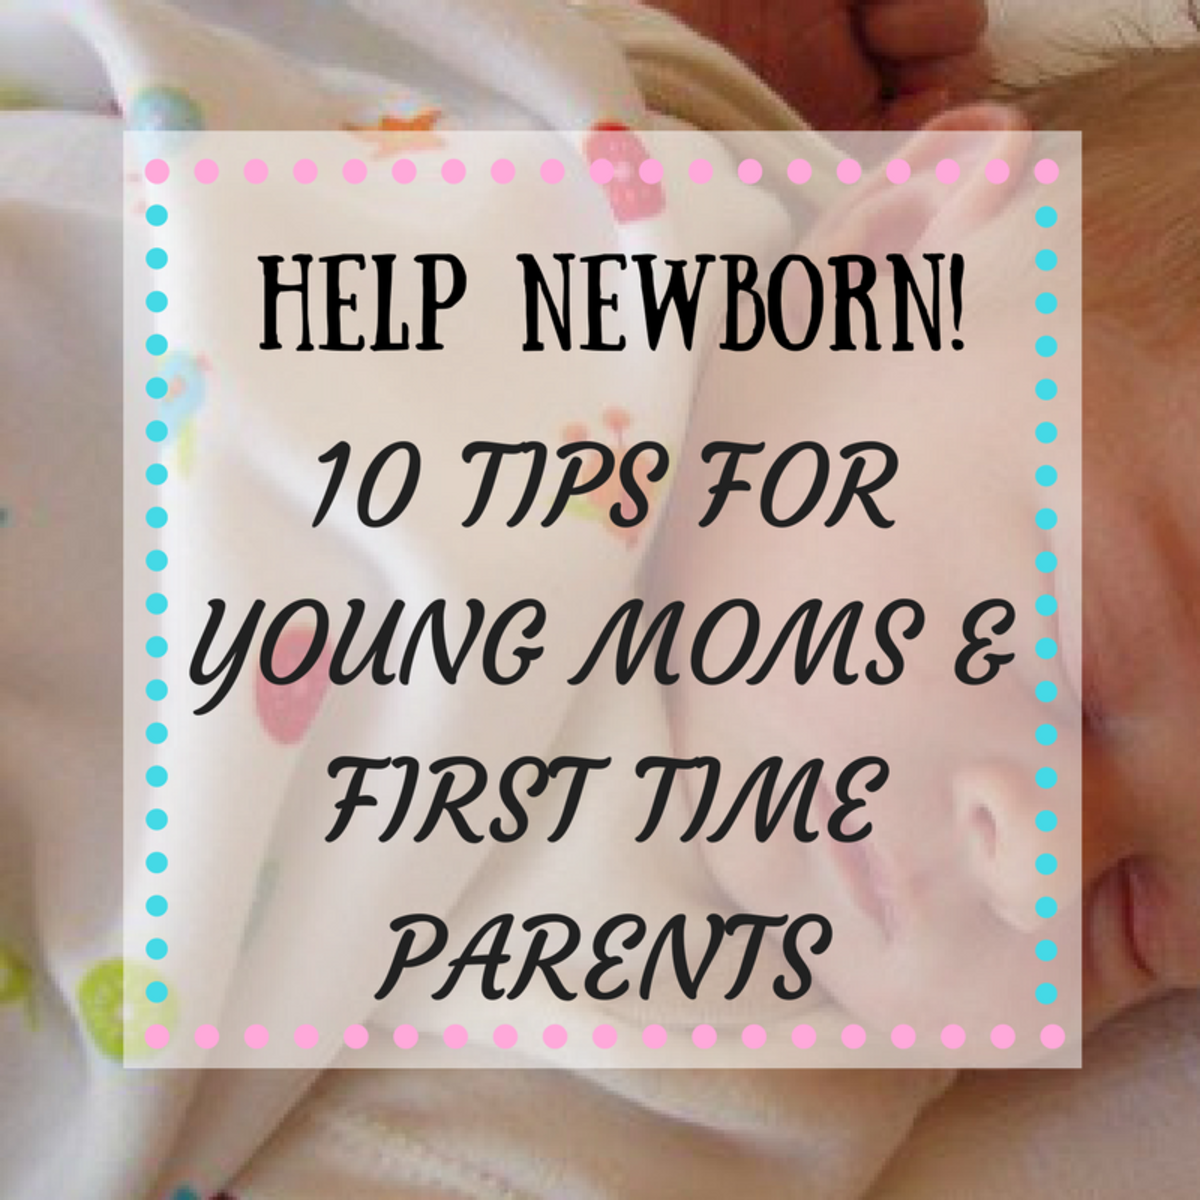 Why groans newborn - tips for young parents 64